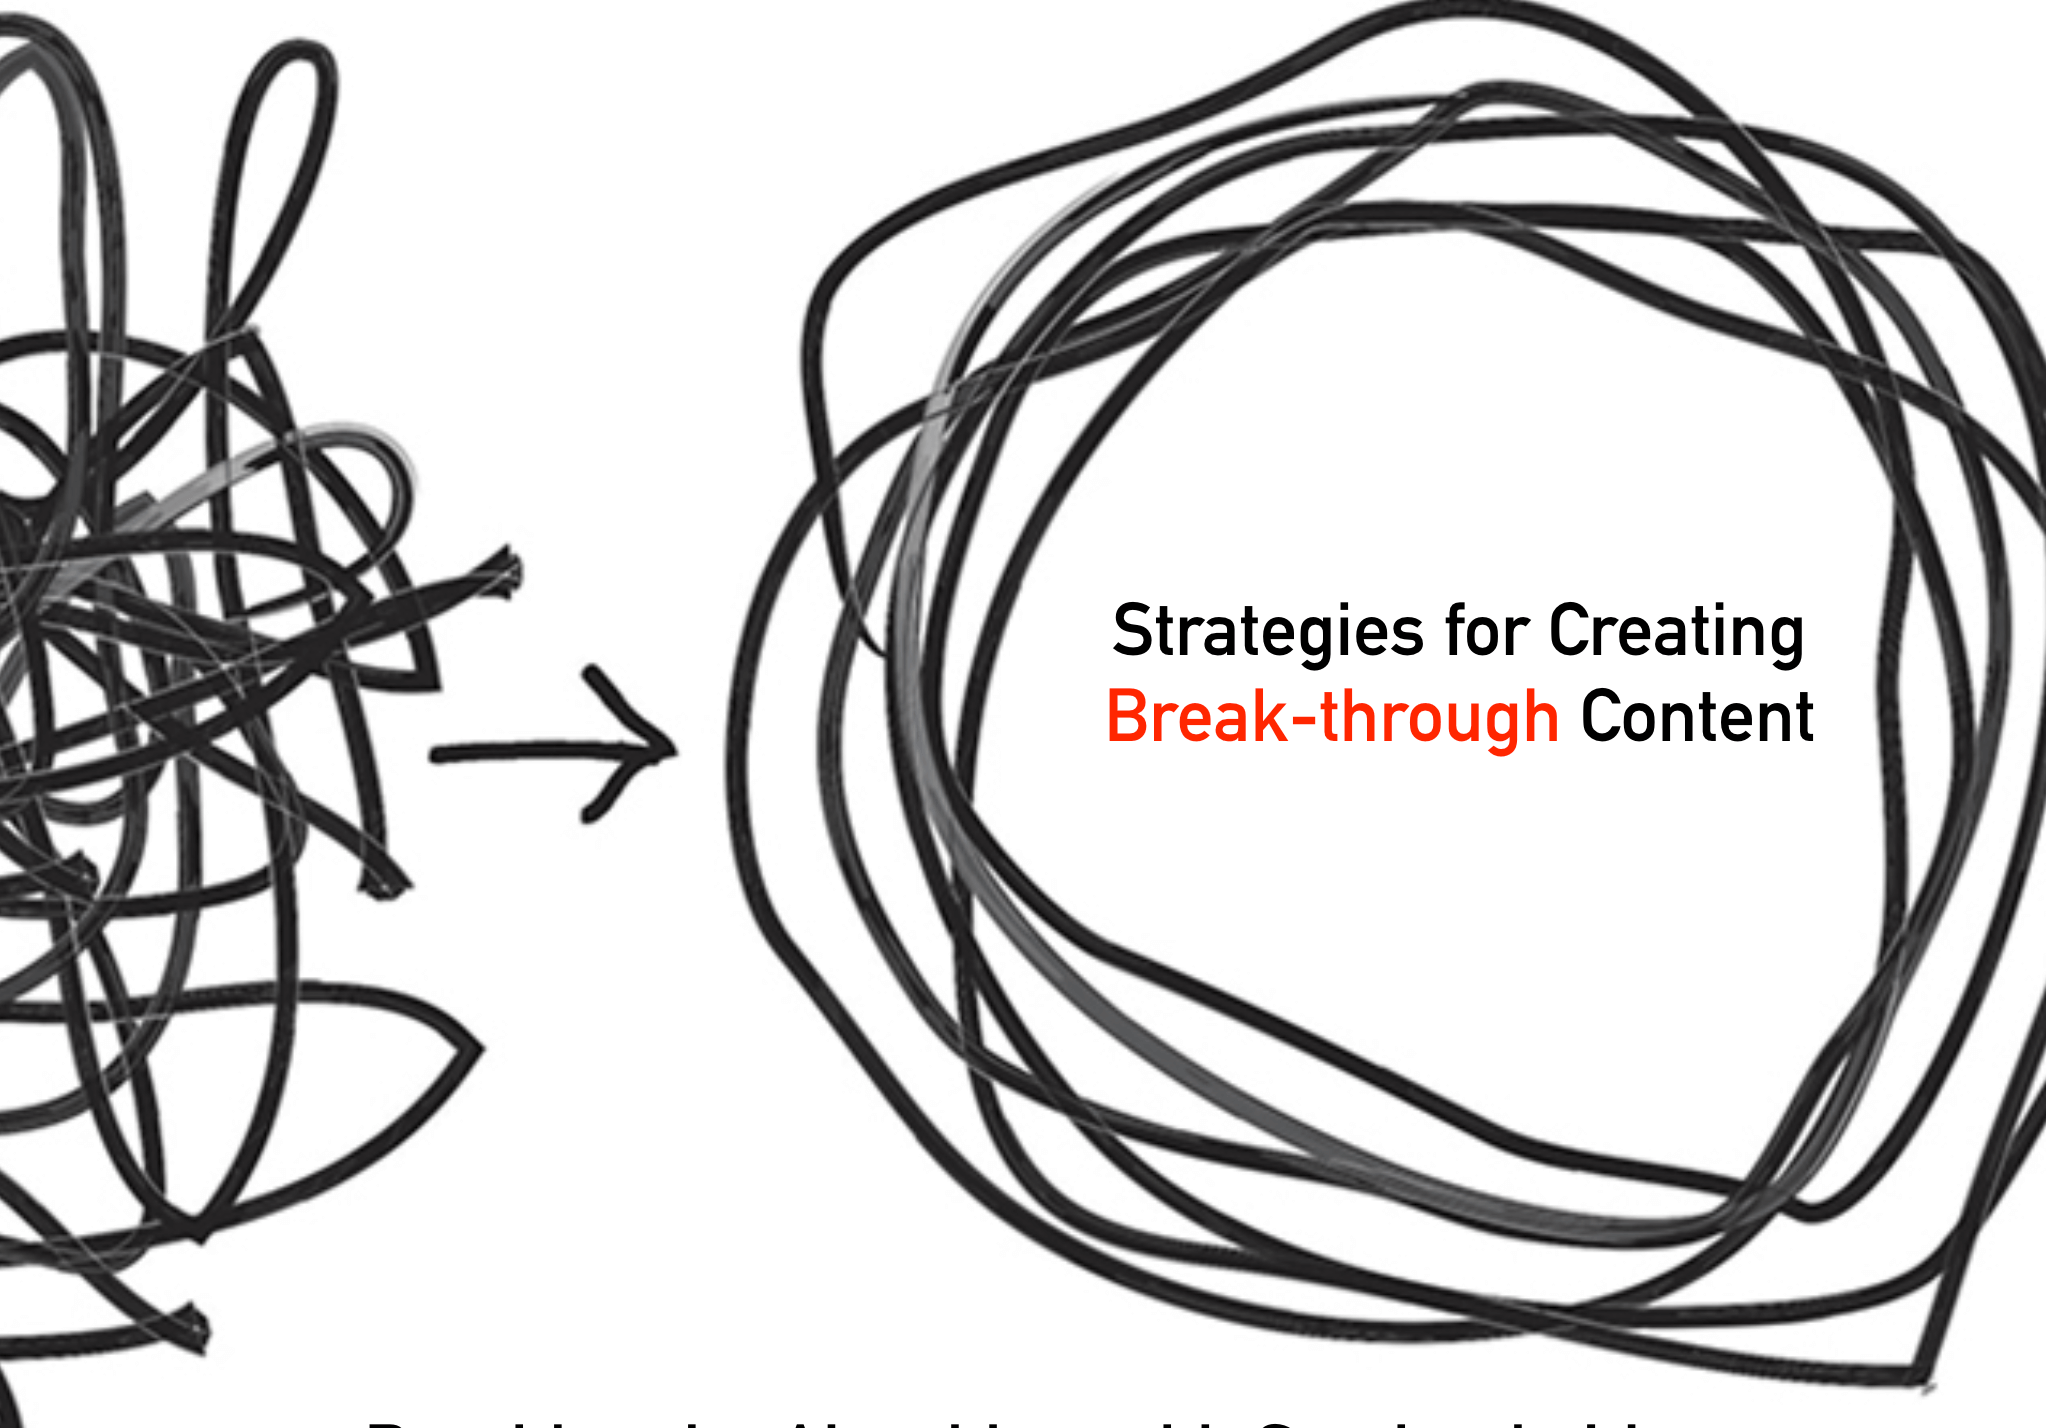 Strategies for Creating Breakthrough Content.png